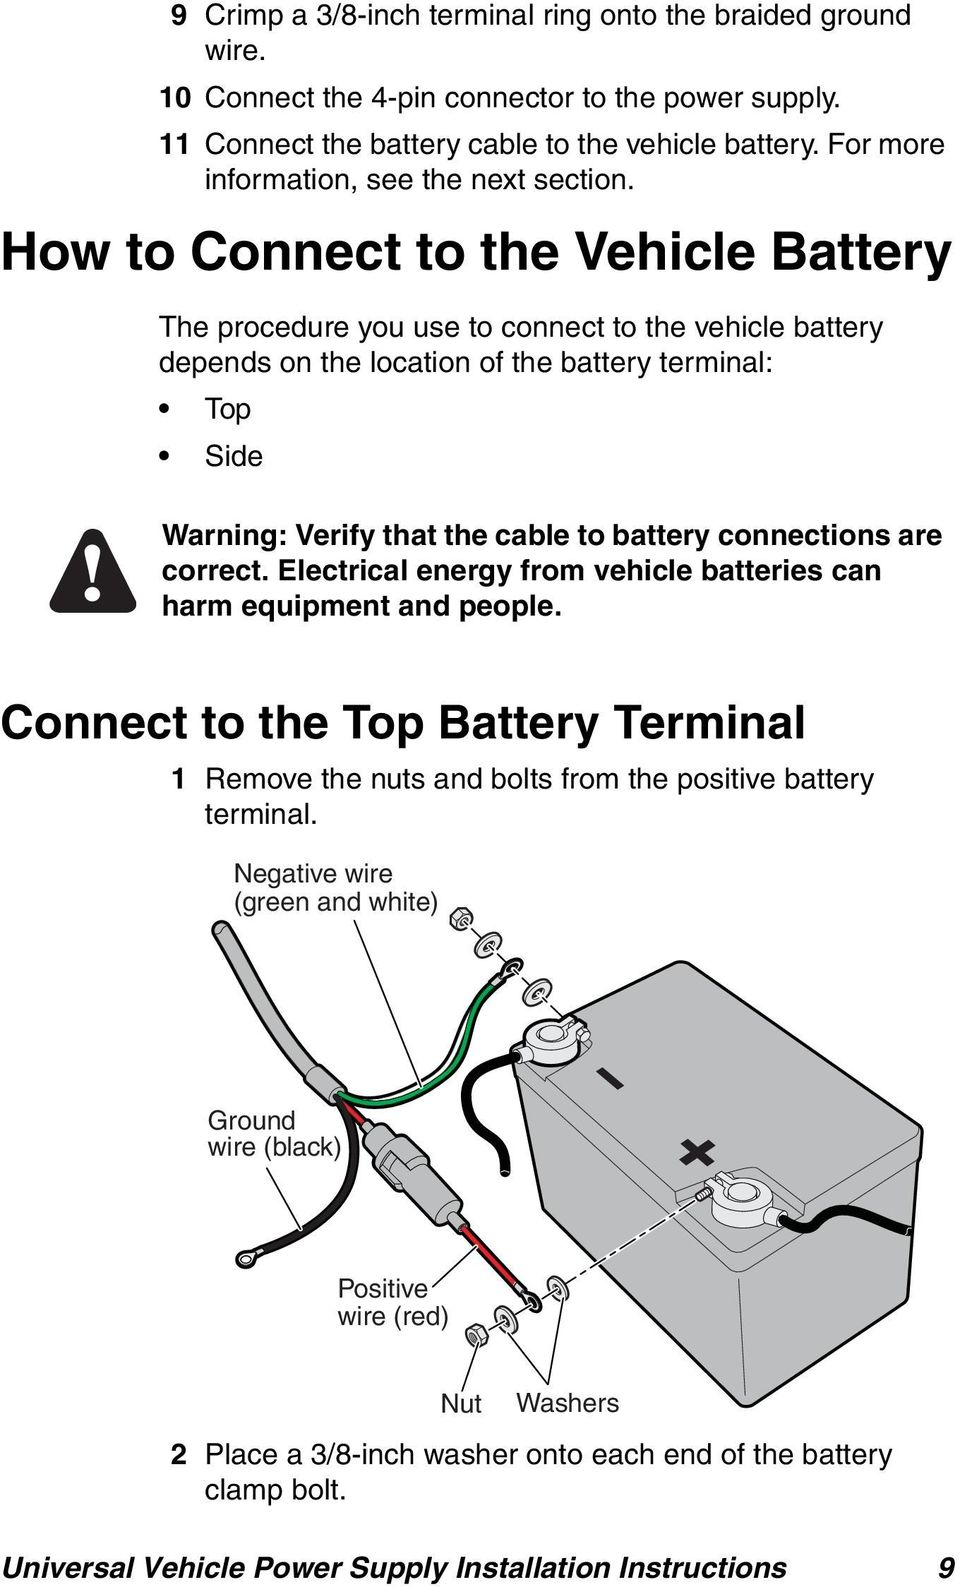 How to Connect to the Vehicle Battery The procedure you use to connect to the vehicle battery depends on the location of the battery terminal: Top Side Warning: Verify that the cable to battery